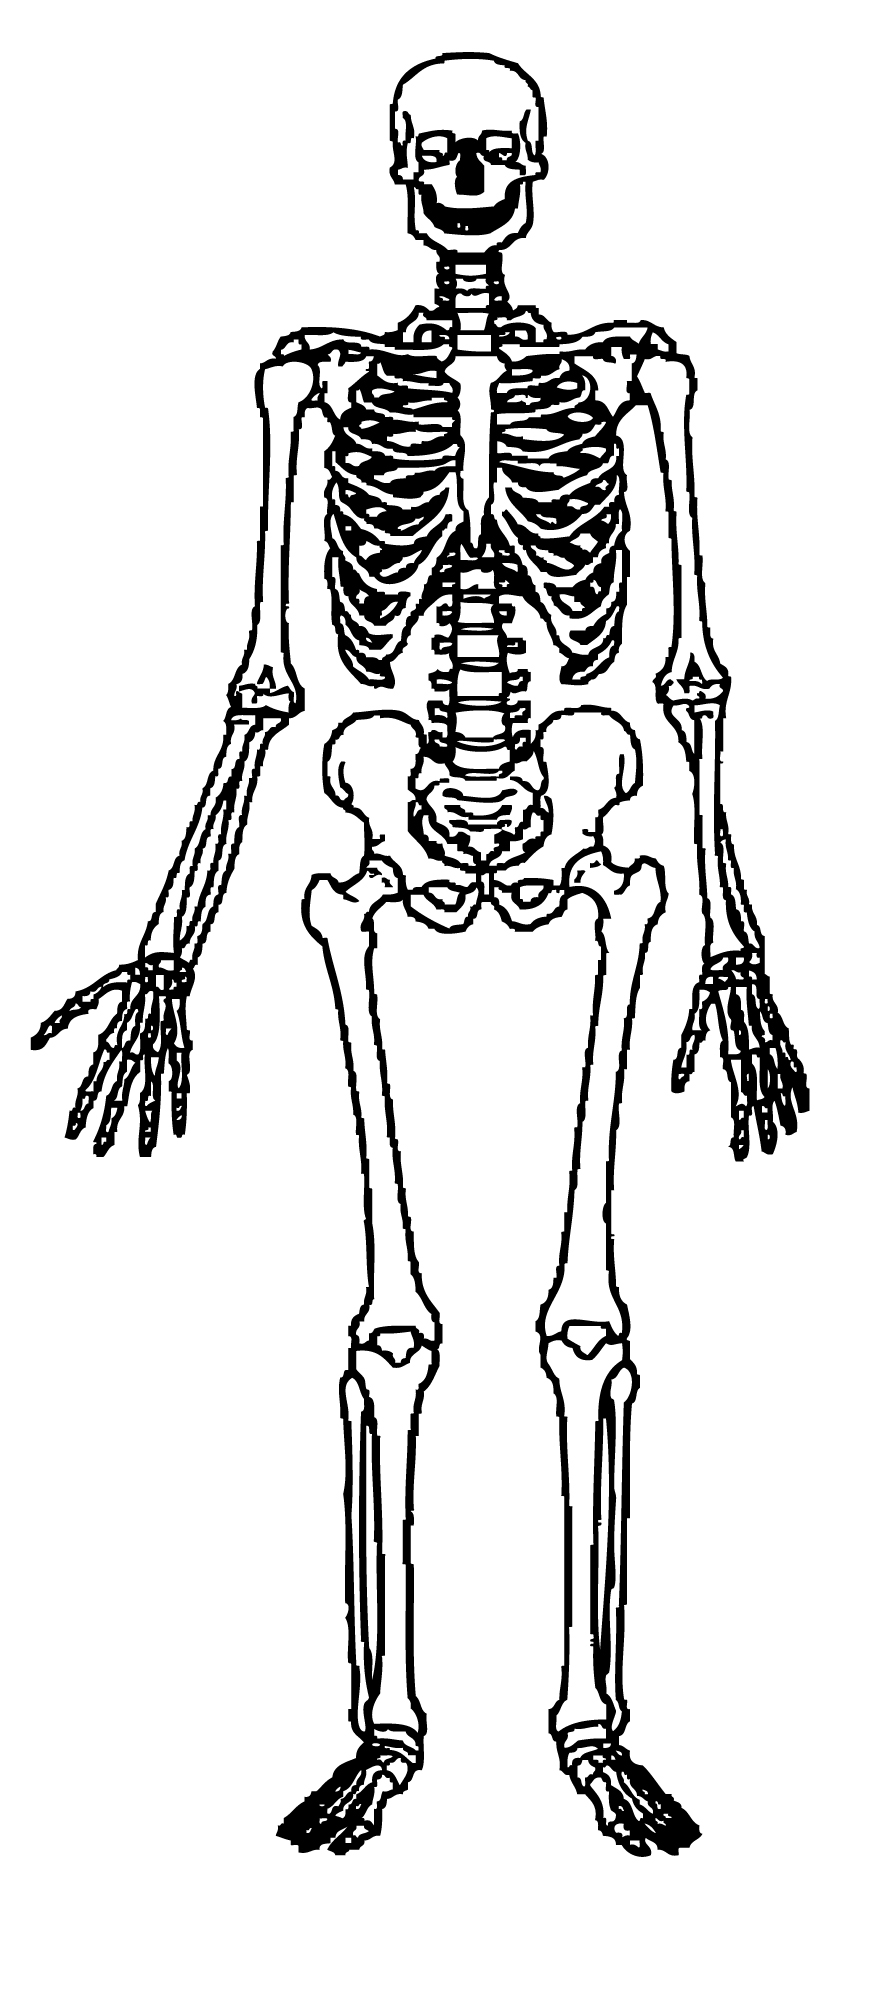 Free Human Anatomy Cliparts, Download Free Clip Art, Free